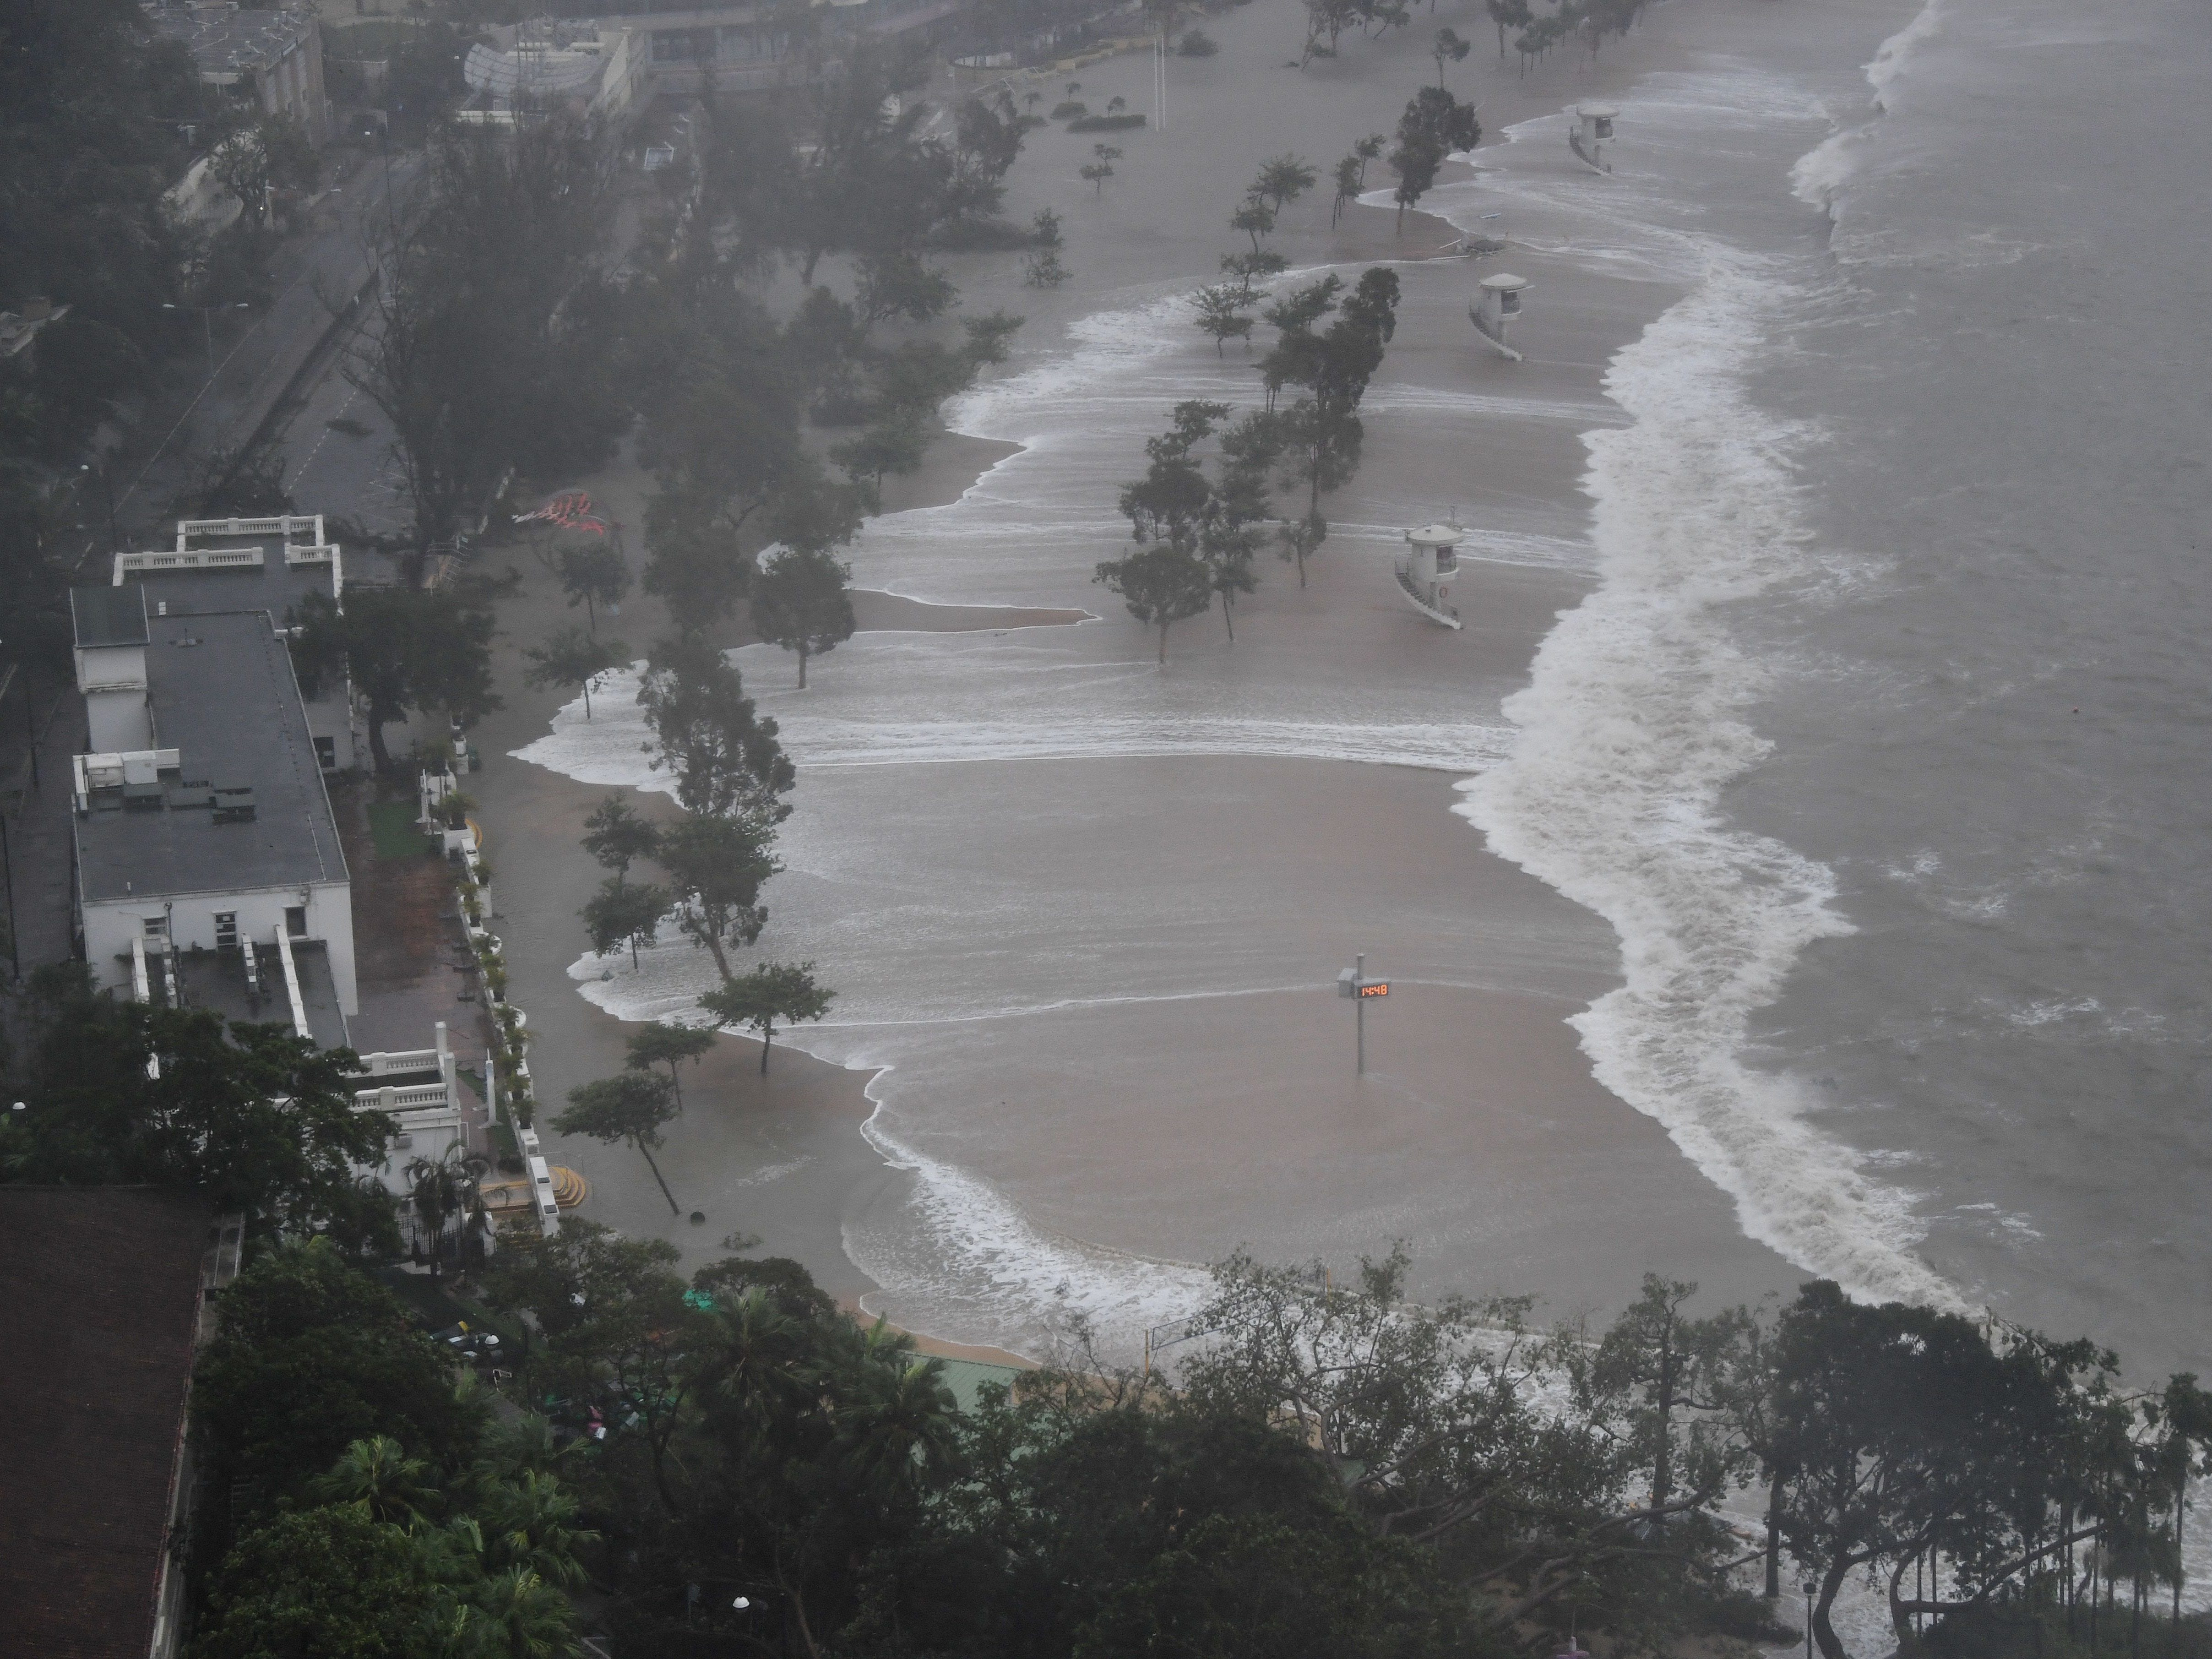 Large waves hit Repulse Bay beach during Super Typhoon Mangkhut in Hong Kong on Sept. 16, 2018.